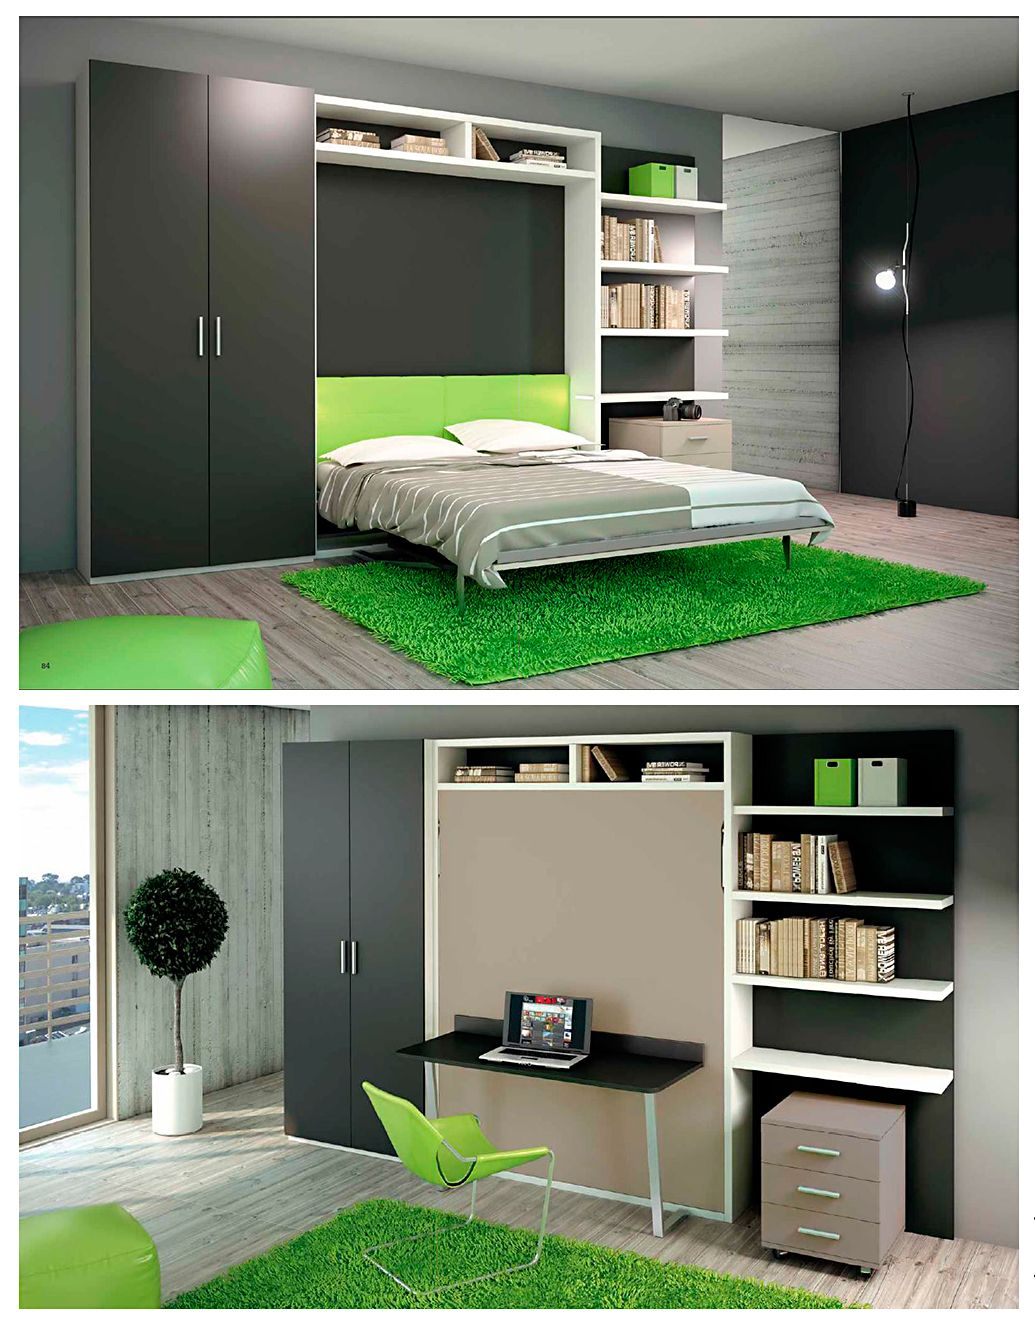 Small spaces and smart designs have never had such a